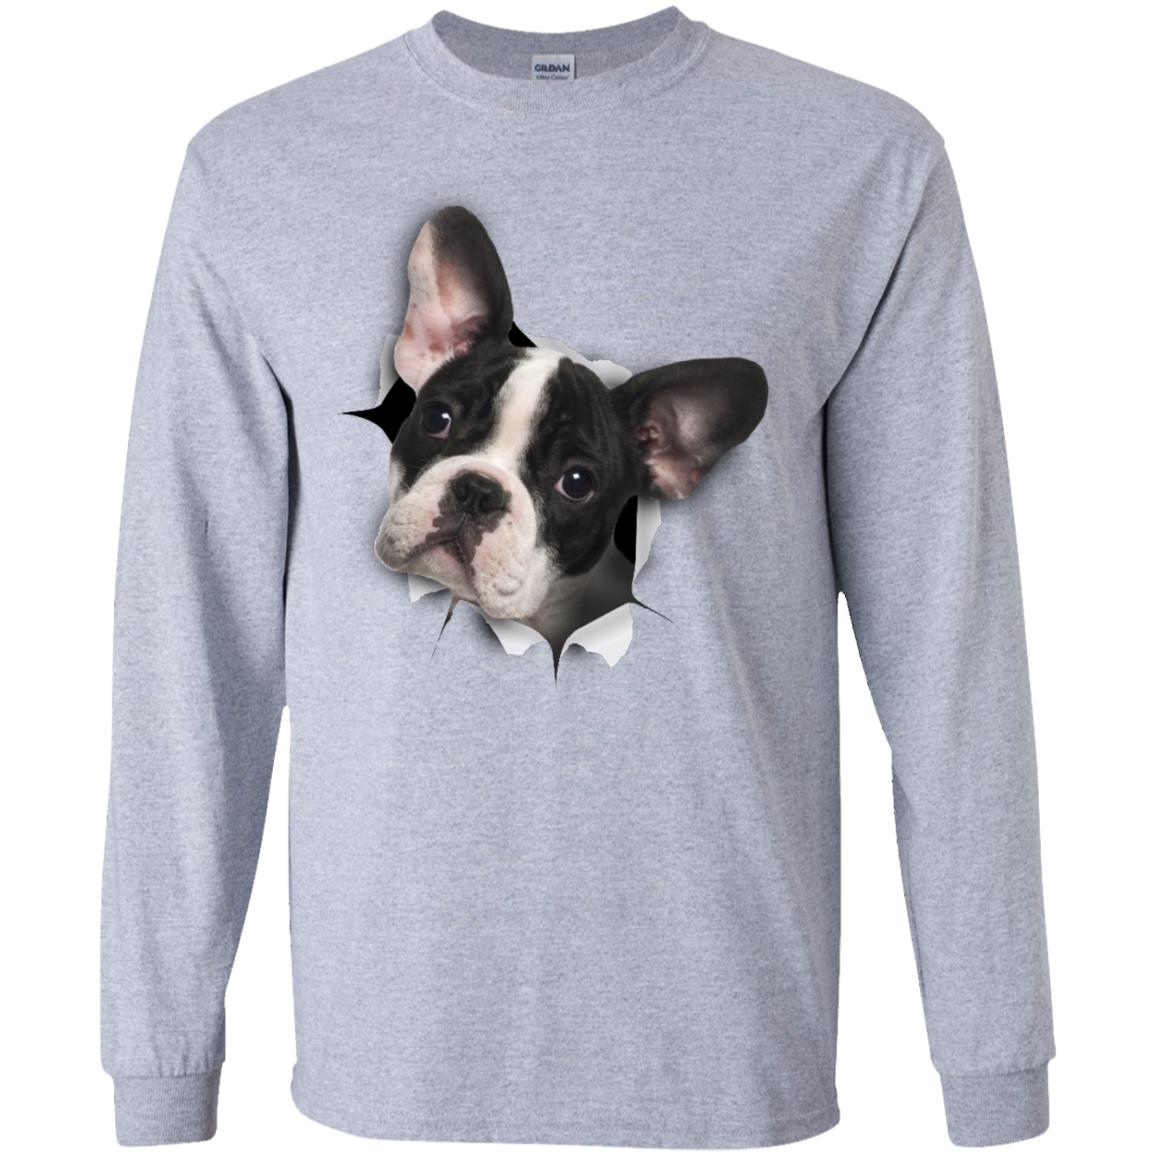 Black & White Frenchie Long Sleeve Ultra Cotton T-Shirt